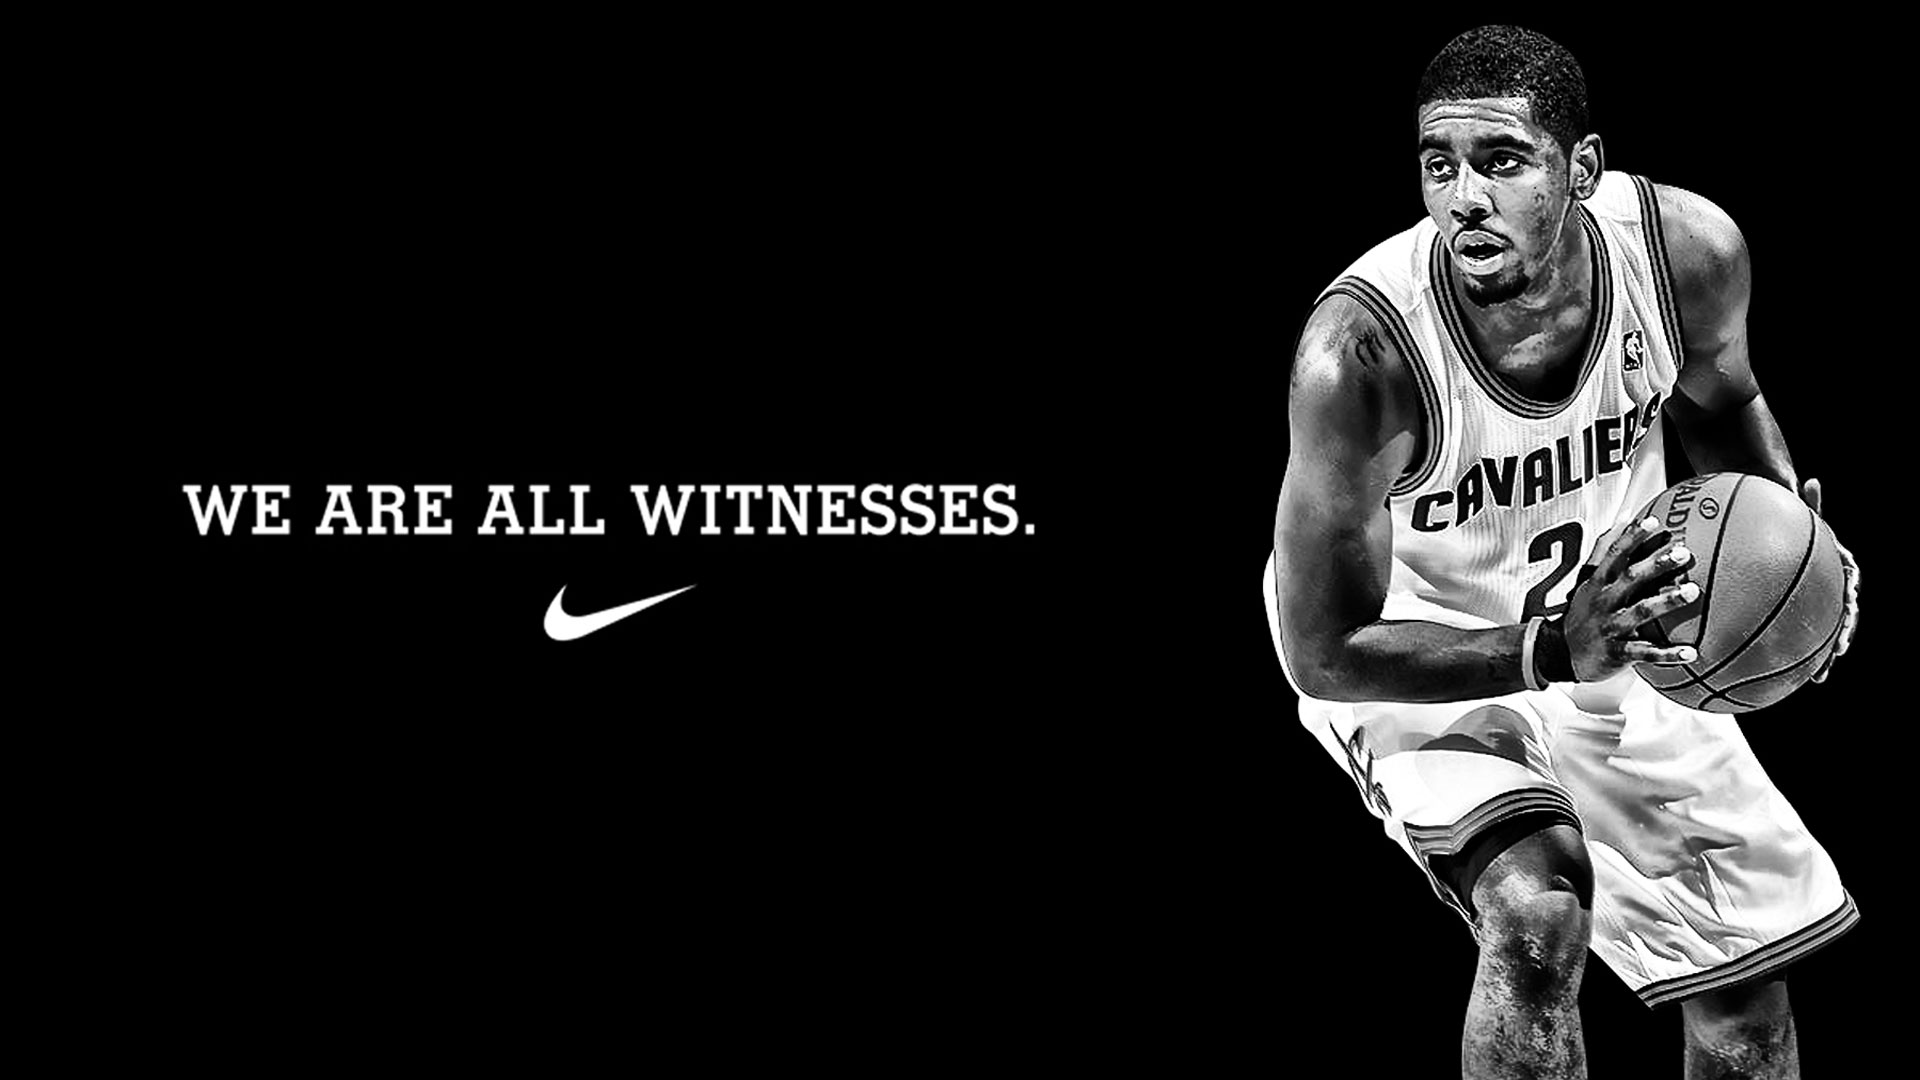 Kyrie Irving Wallpapers | Basketball Wallpapers at ...Kyrie Irving Sage